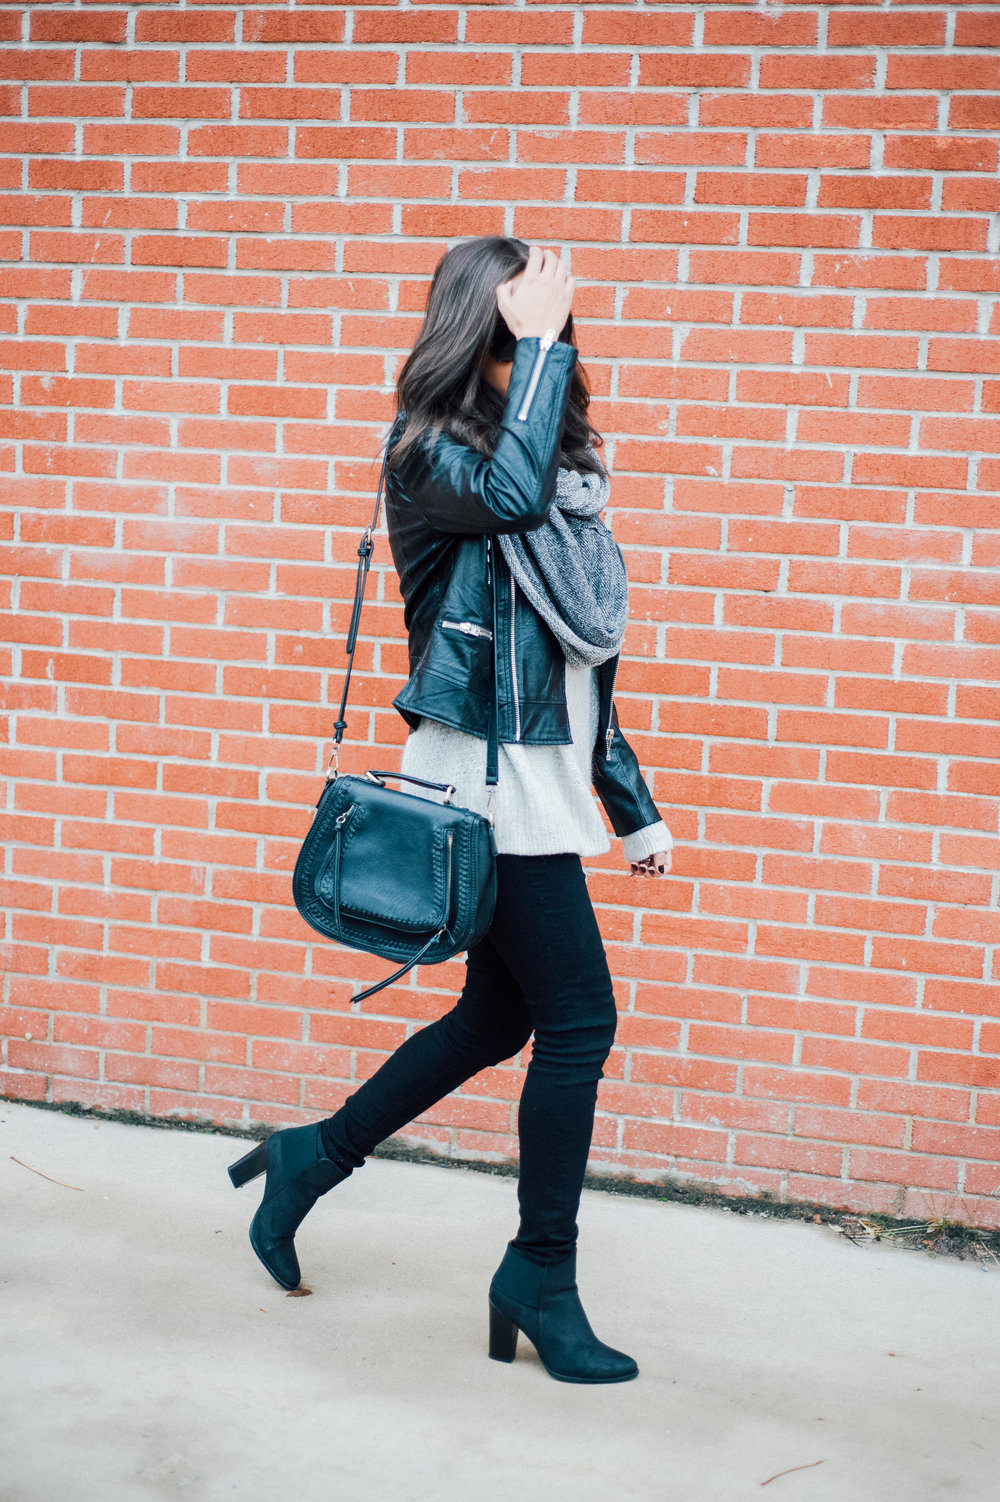 Black Faux Leather Jacket + Grey Infinity Scarf 26.jpg